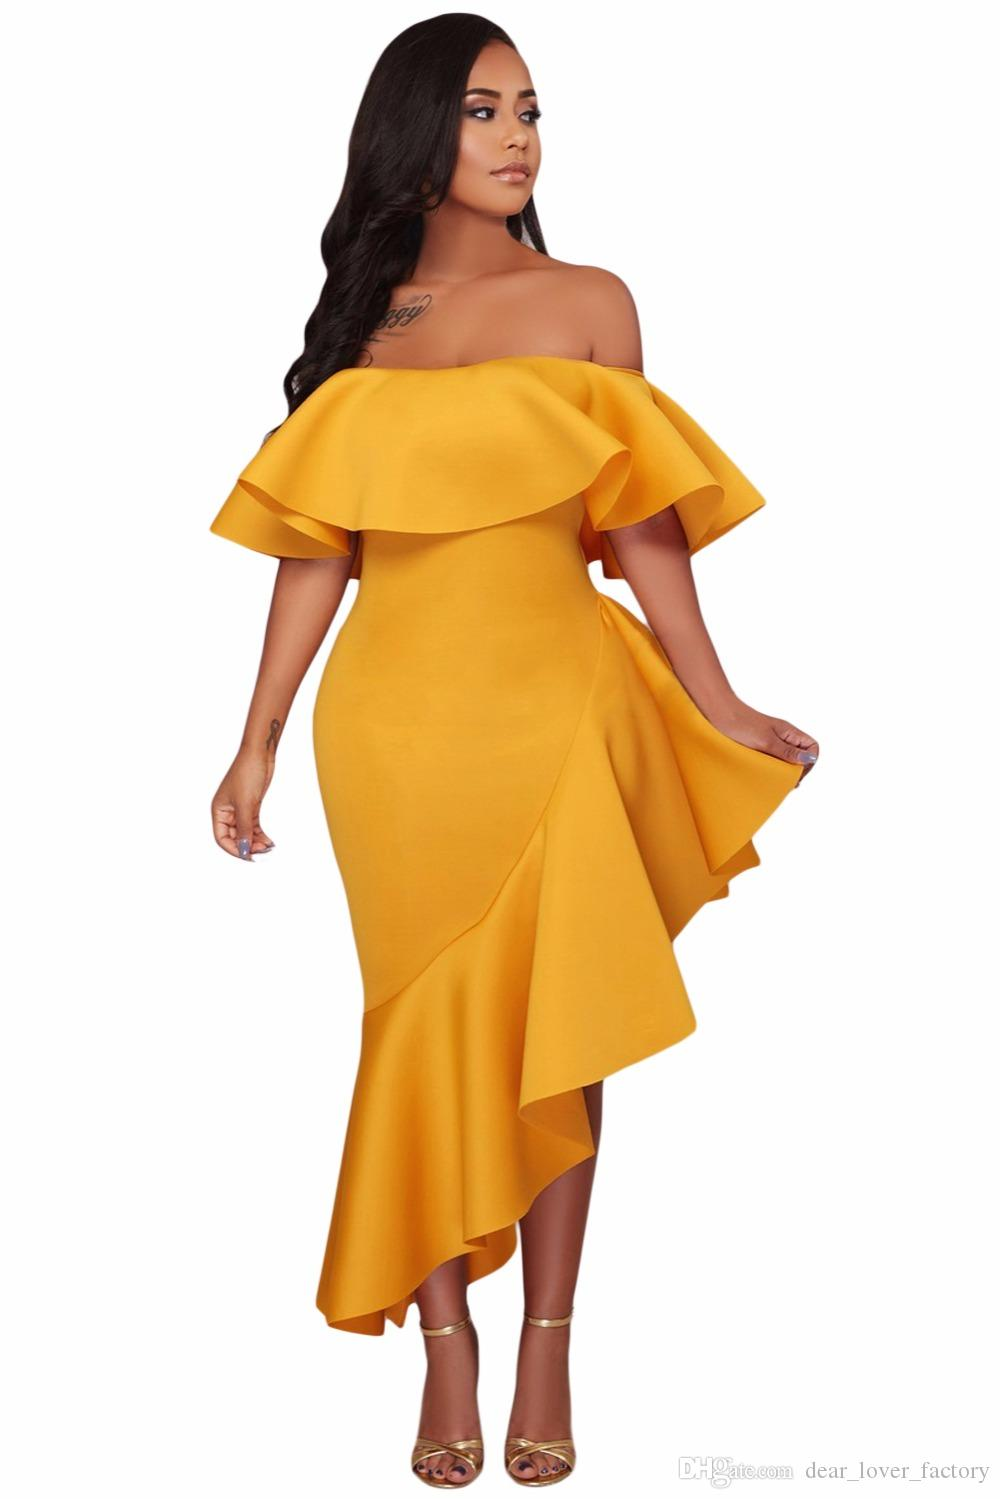 537502a2b1fd 2018 Off Shoulder Party Evening Dress Sexy Ladies Yellow Short Sleeve  Asymmetric Elegant Ruffle Dress Vestidos Verano Dresses Pink Cocktail Dresses  Dress ...